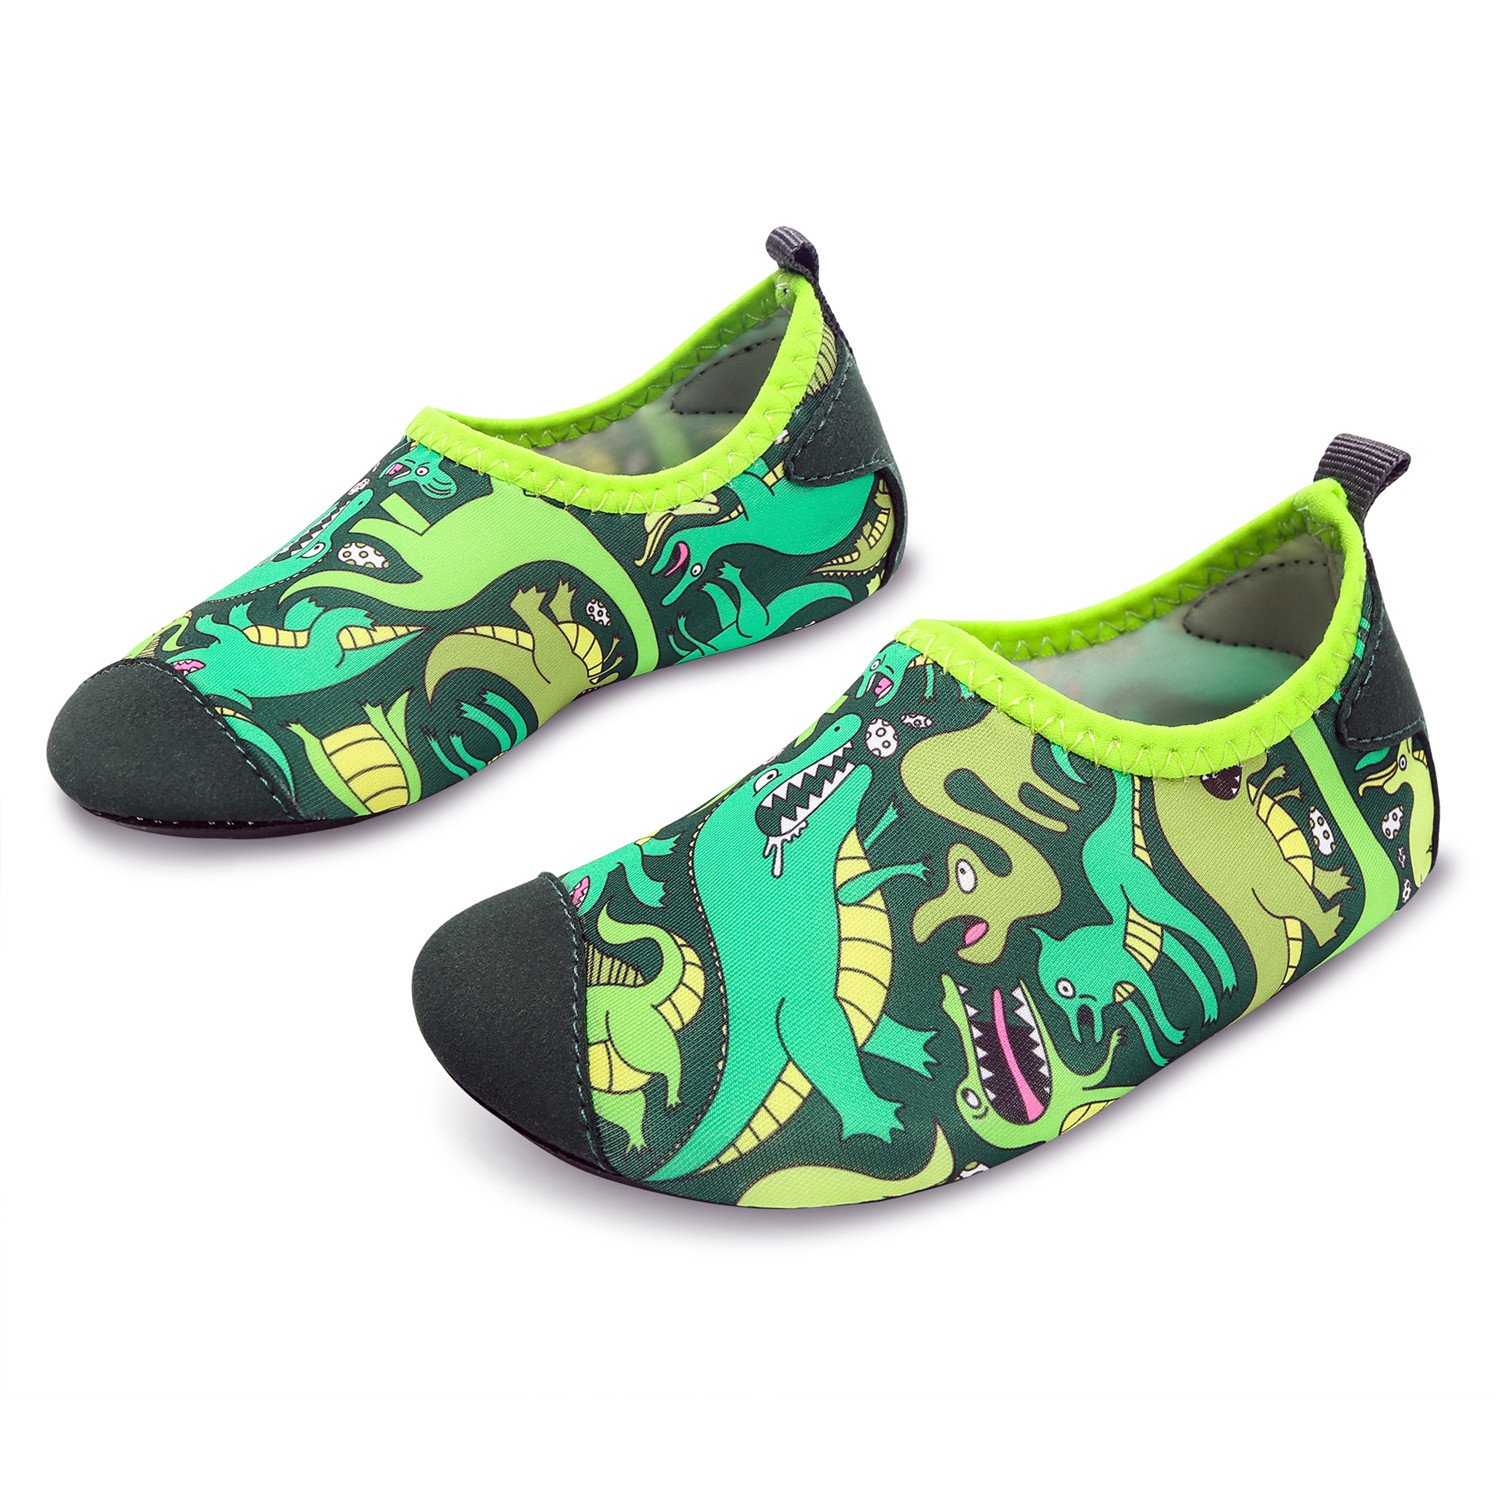 L-RUN Boys & Girls Water Shoes Lightweight Aqua Sock Green 8-8.5=EU 24-25